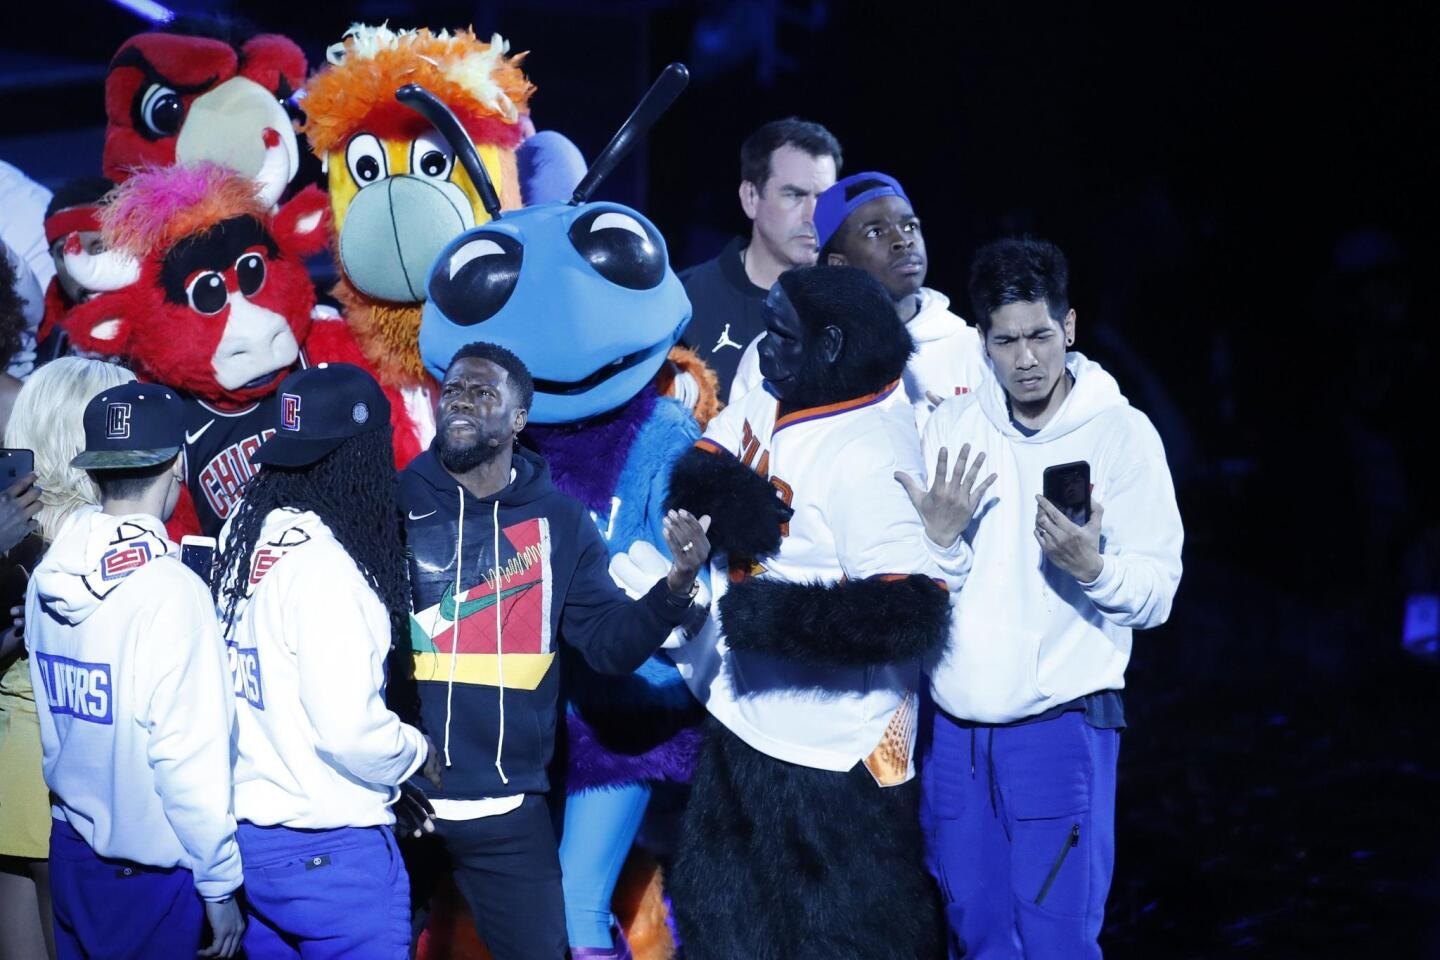 AGXO6. New York (United States), 19/02/2018.- Kevin Hart performs with team mascots and dancers during pregame introductions at the 2018 All-Star game at Staples Center in Los Angeles, California, USA, 18 February 2018.